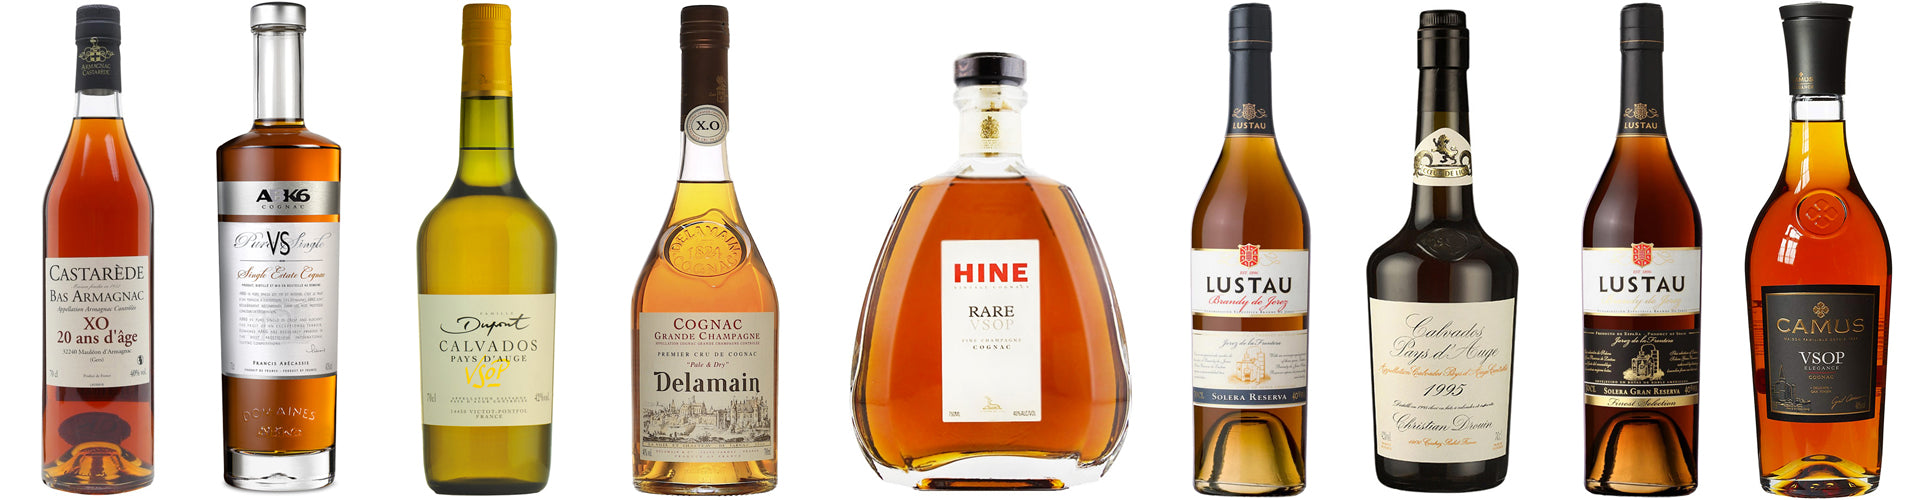 Assorted Bottles of Brandy including Cognac, Armagnac and Calvados